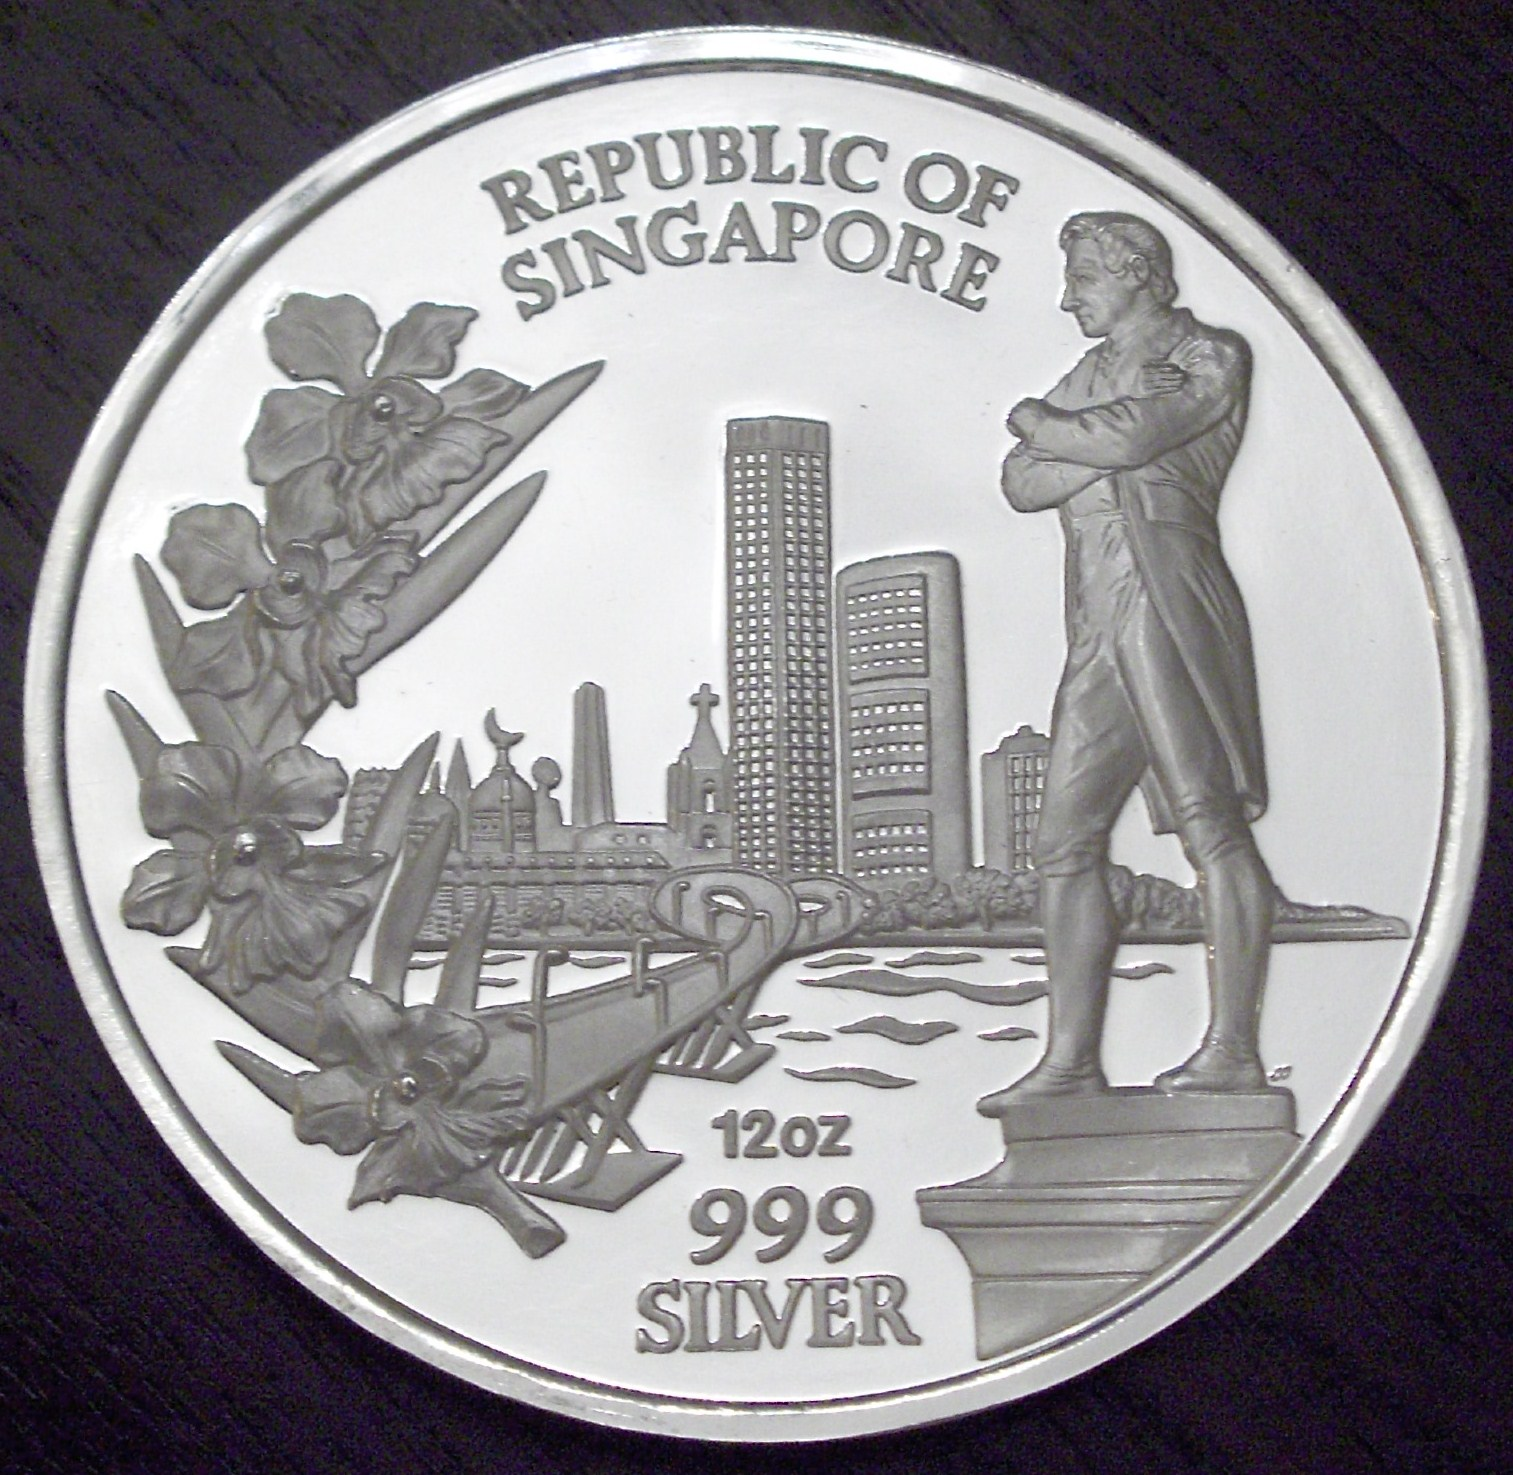 Singapore 1987 12 Ounces Convention front